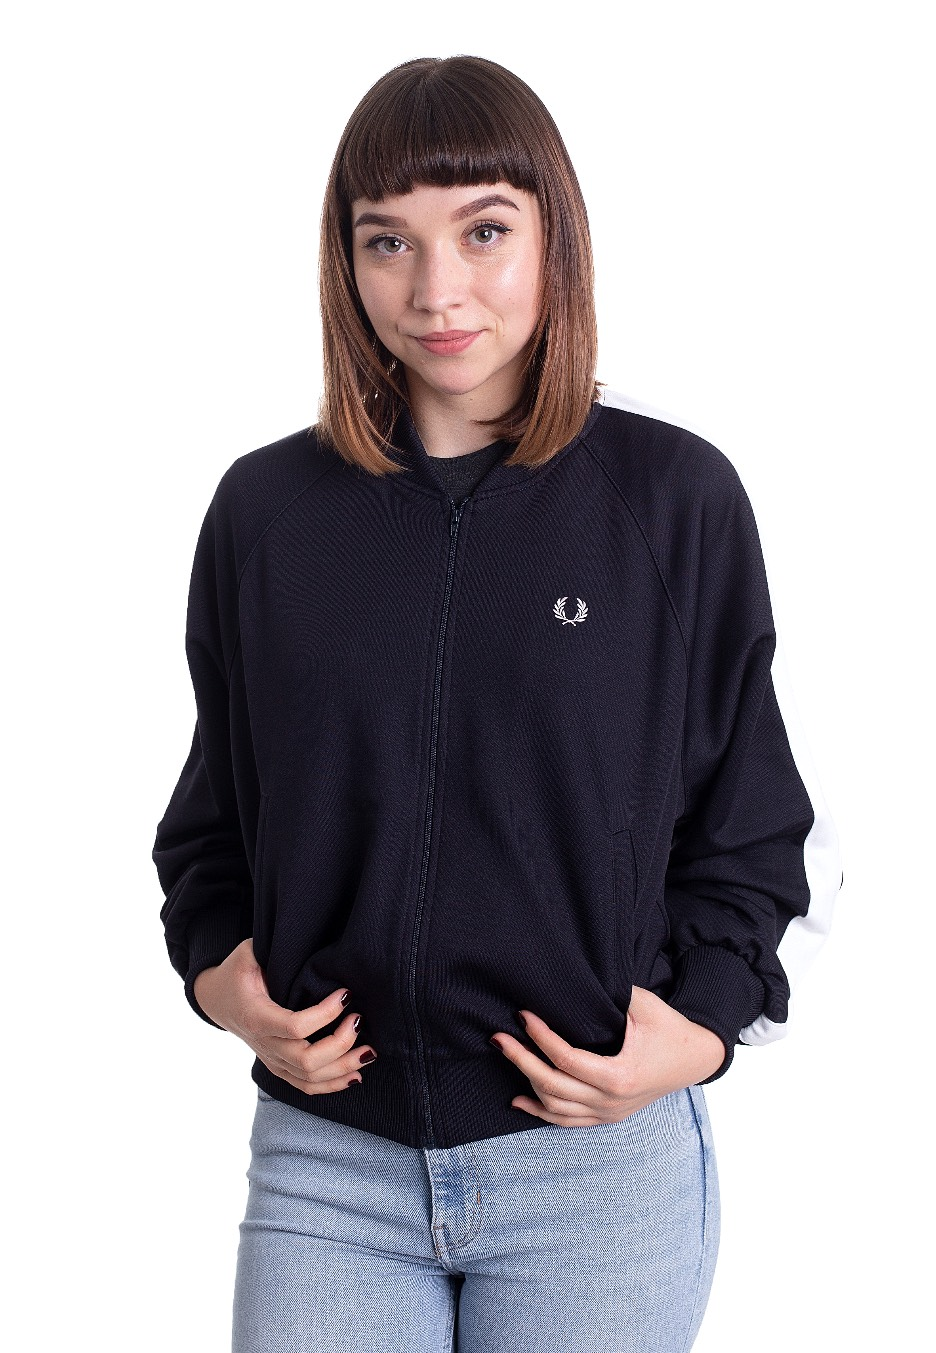 Jacken - Fred Perry Striped Bomber Navy Jacken  - Onlineshop IMPERICON